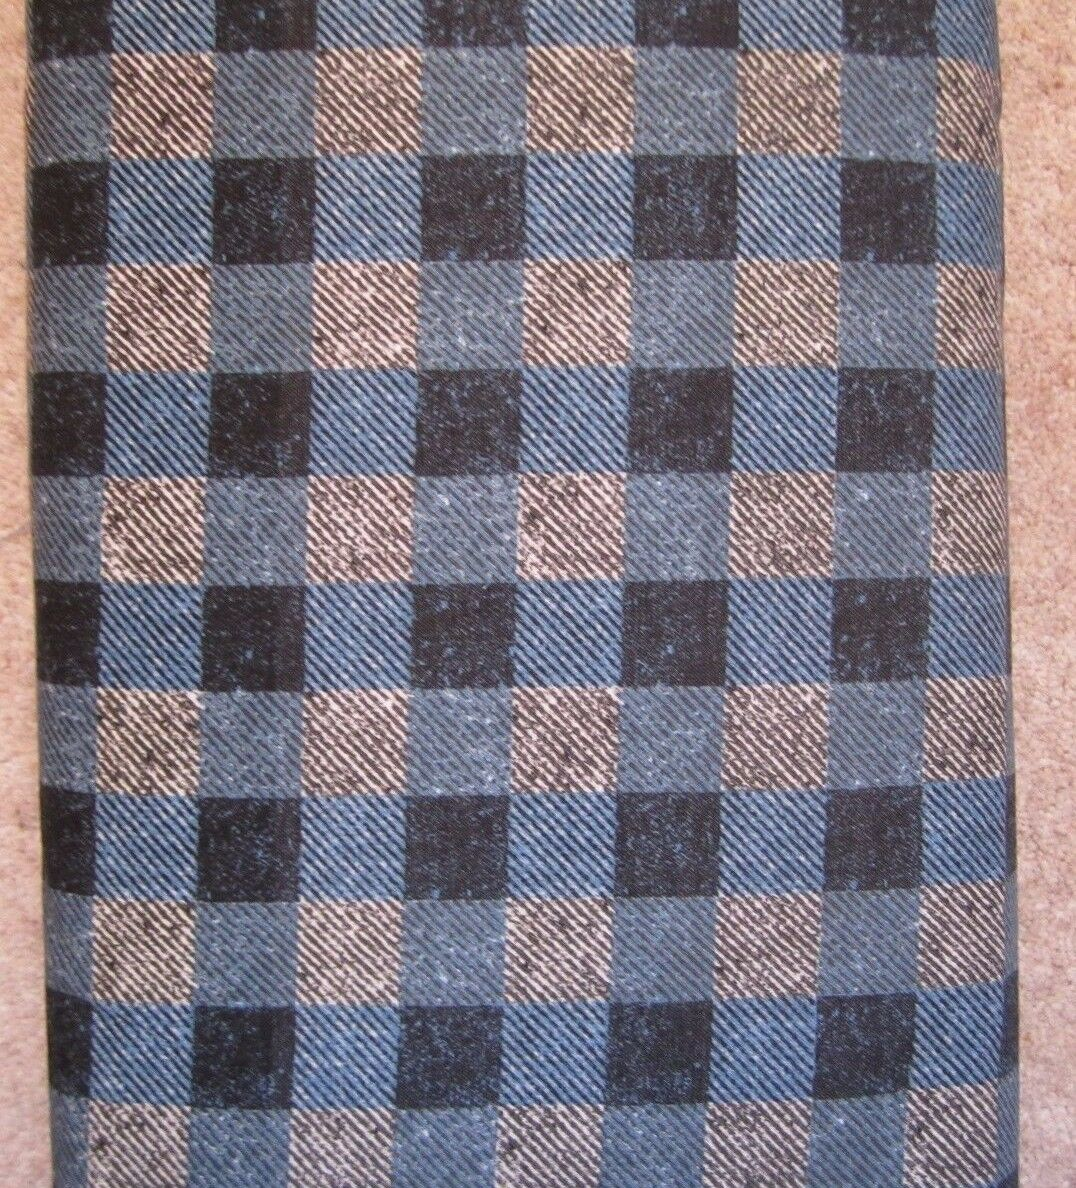 Checks in grey and blue 100% cotton 'Menswear' from Penny Rose Fabrics